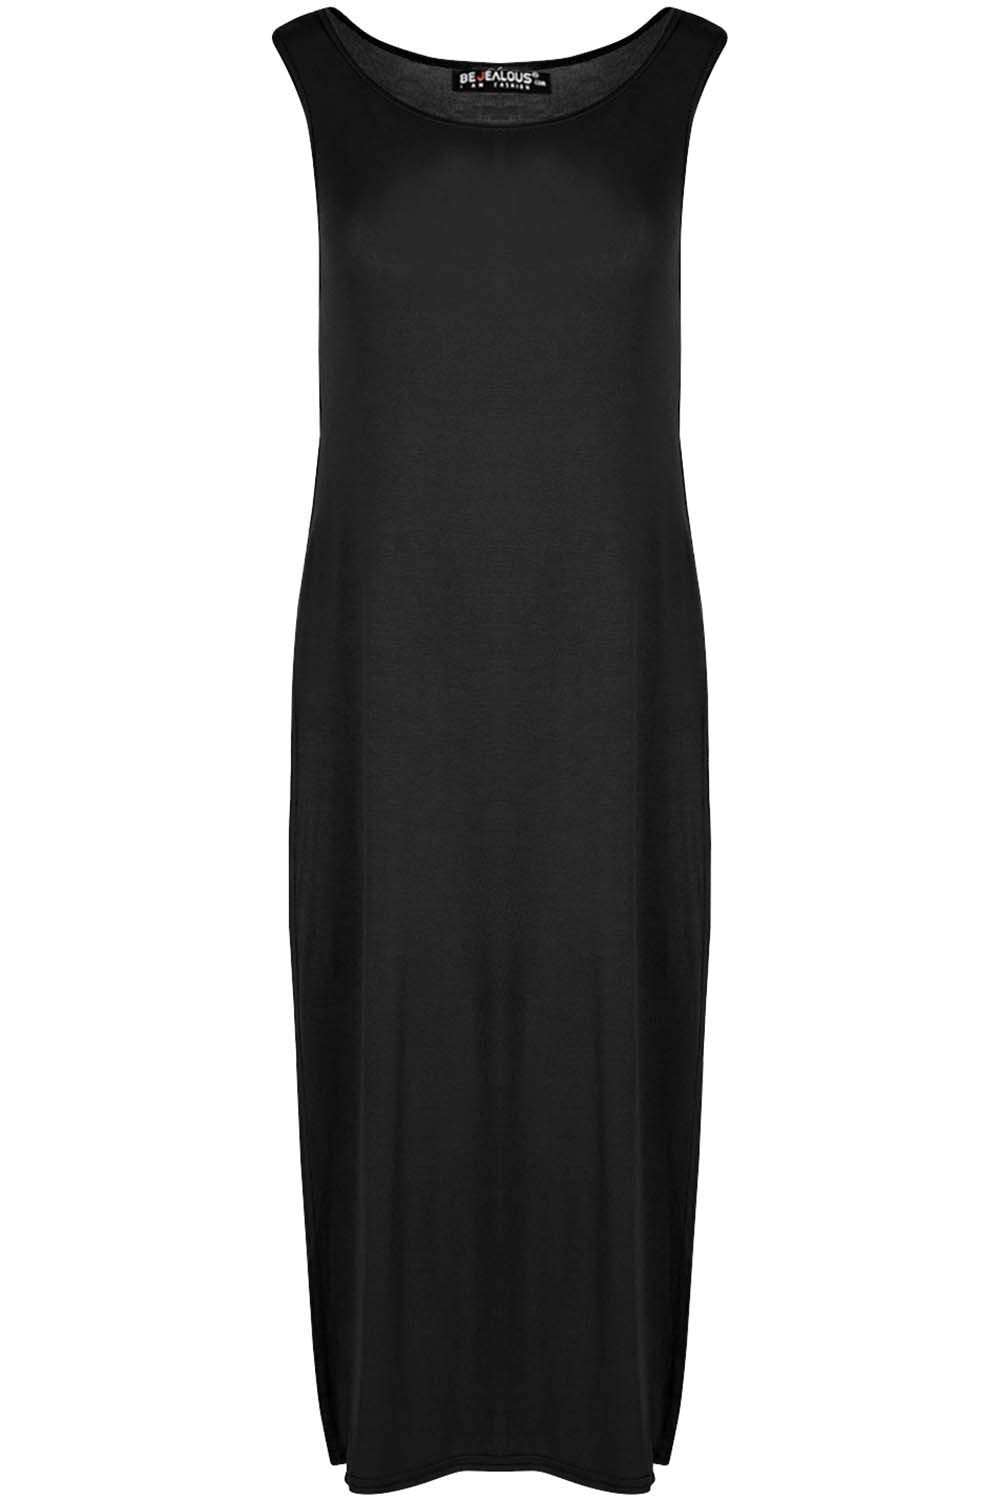 Leona Basic Jersey Side Split Maxi Tshirt Dress - bejealous-com